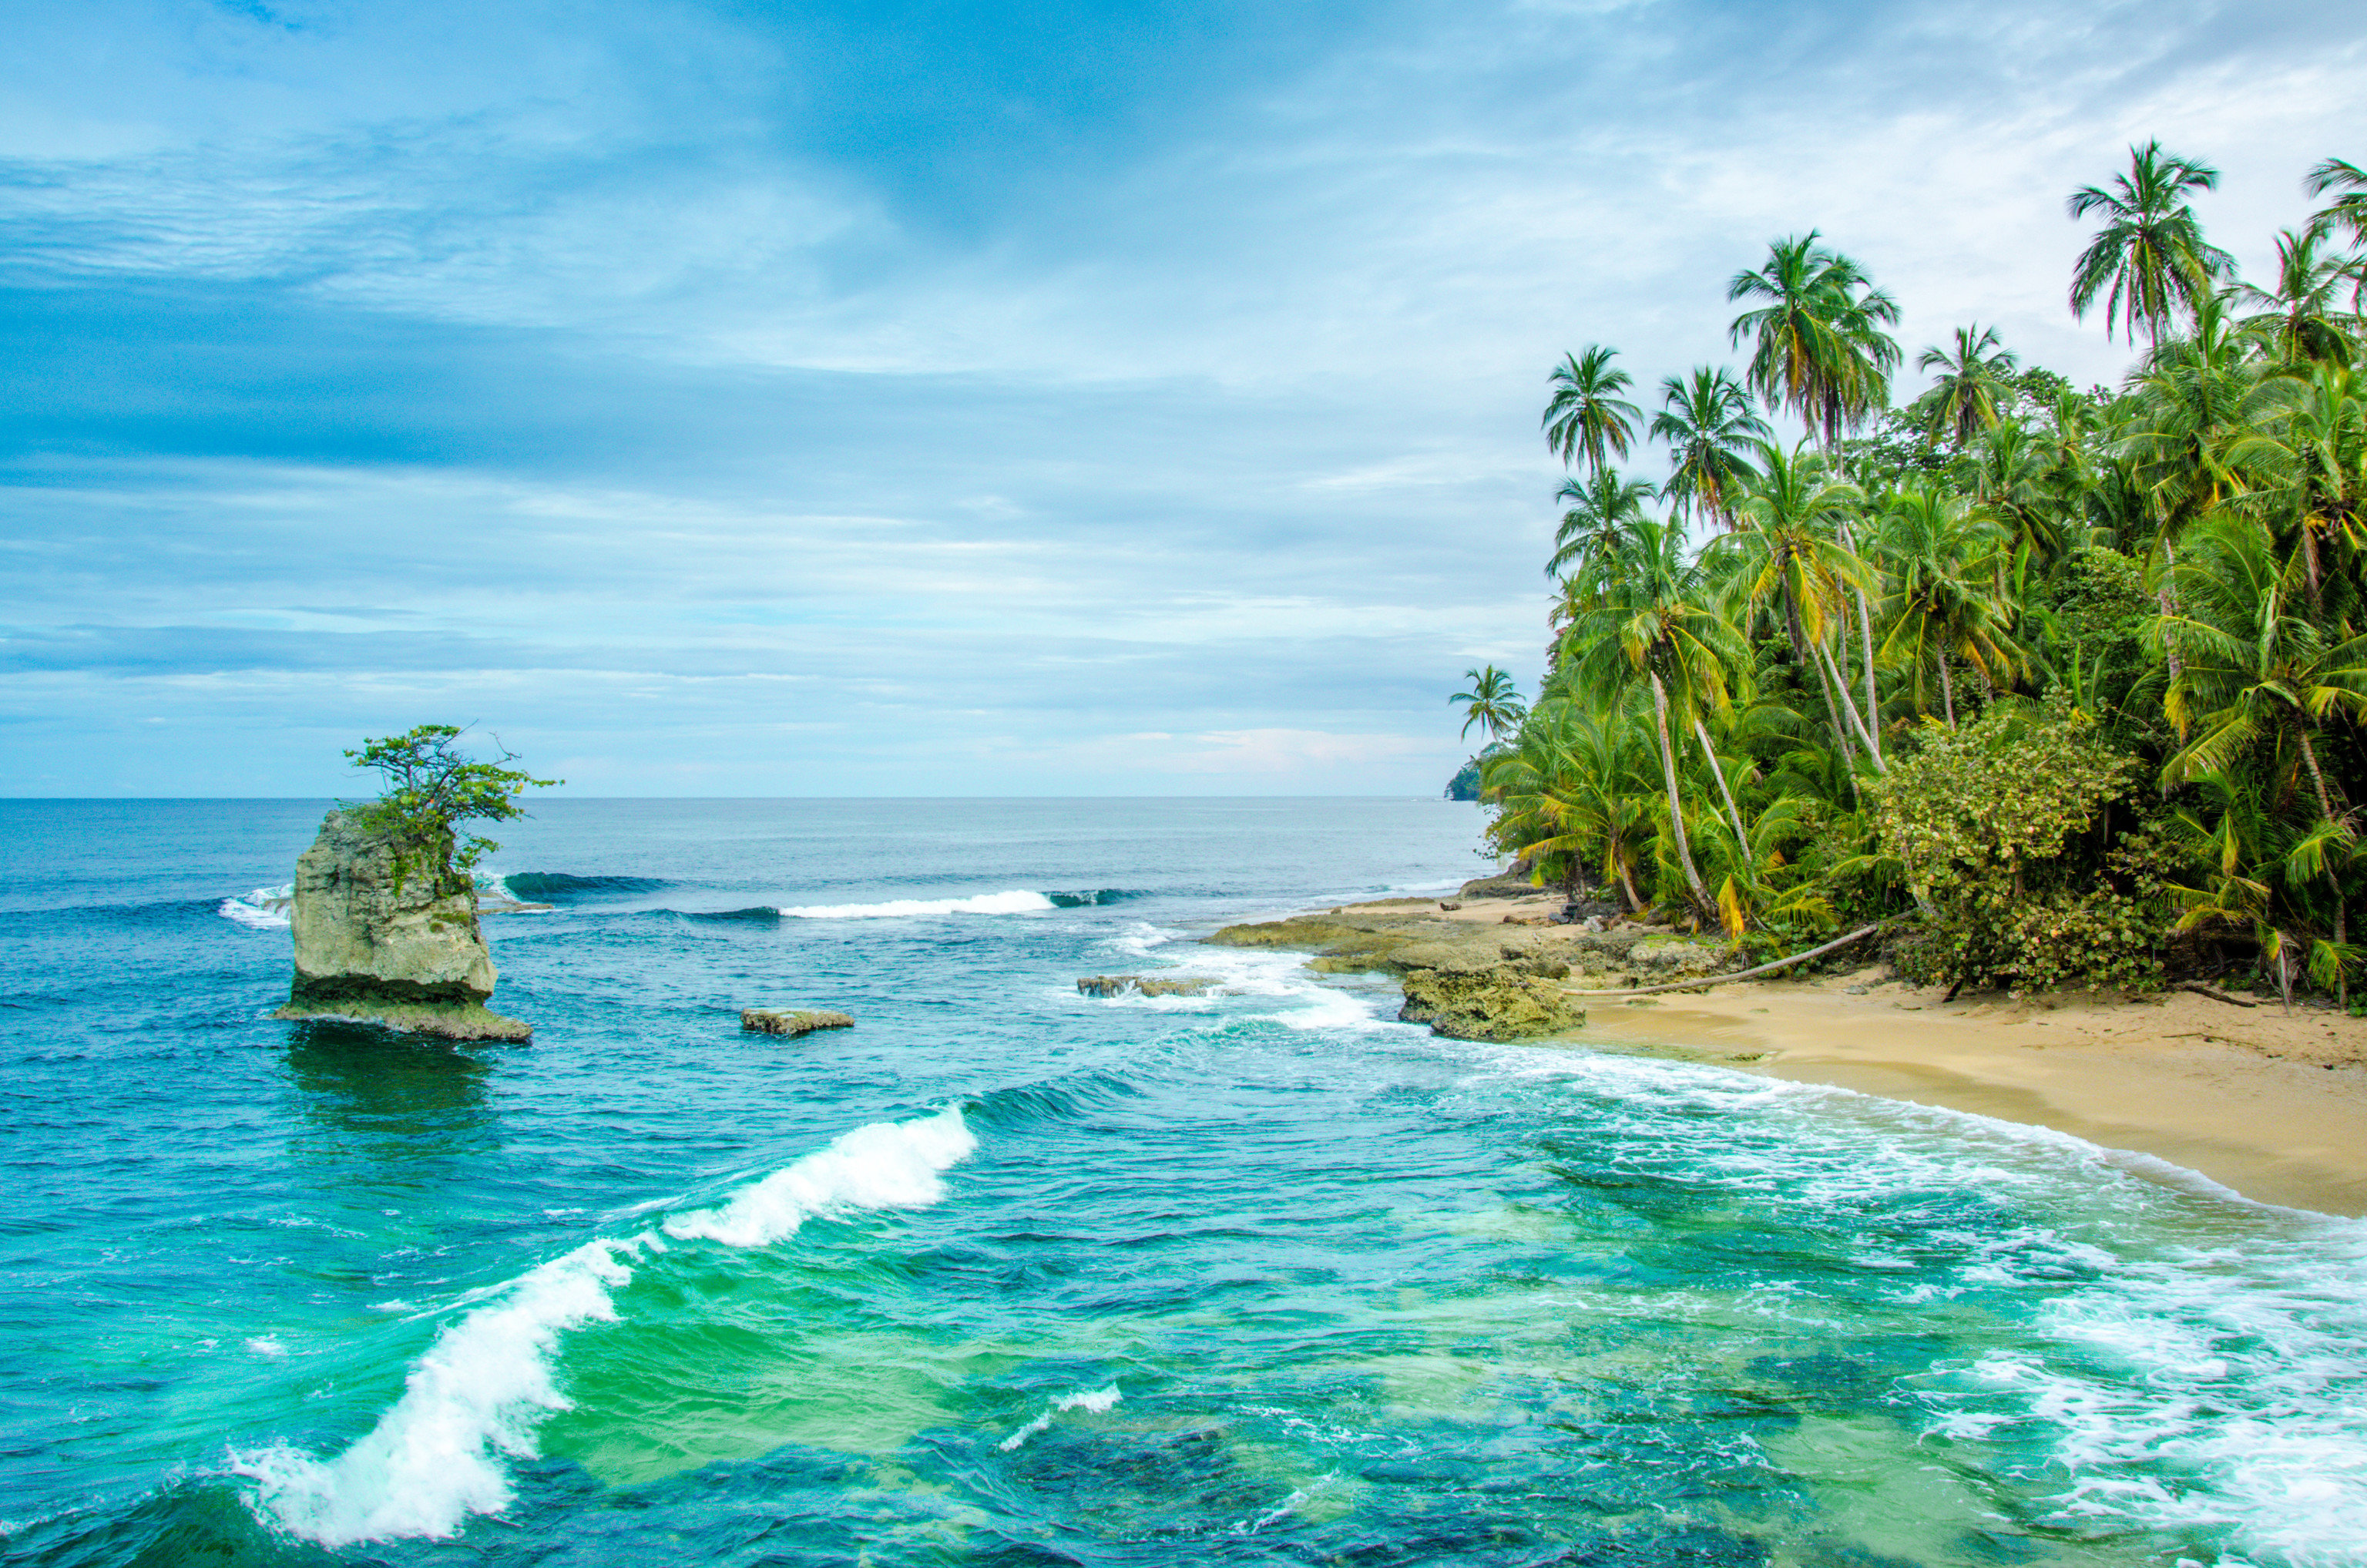 Hotels Trip Ideas water outdoor sky Sea tropics coastal and oceanic landforms Ocean Coast caribbean shore promontory Island Nature islet arecales palm tree bay Lagoon tree vacation Beach tourism wave computer wallpaper cove day